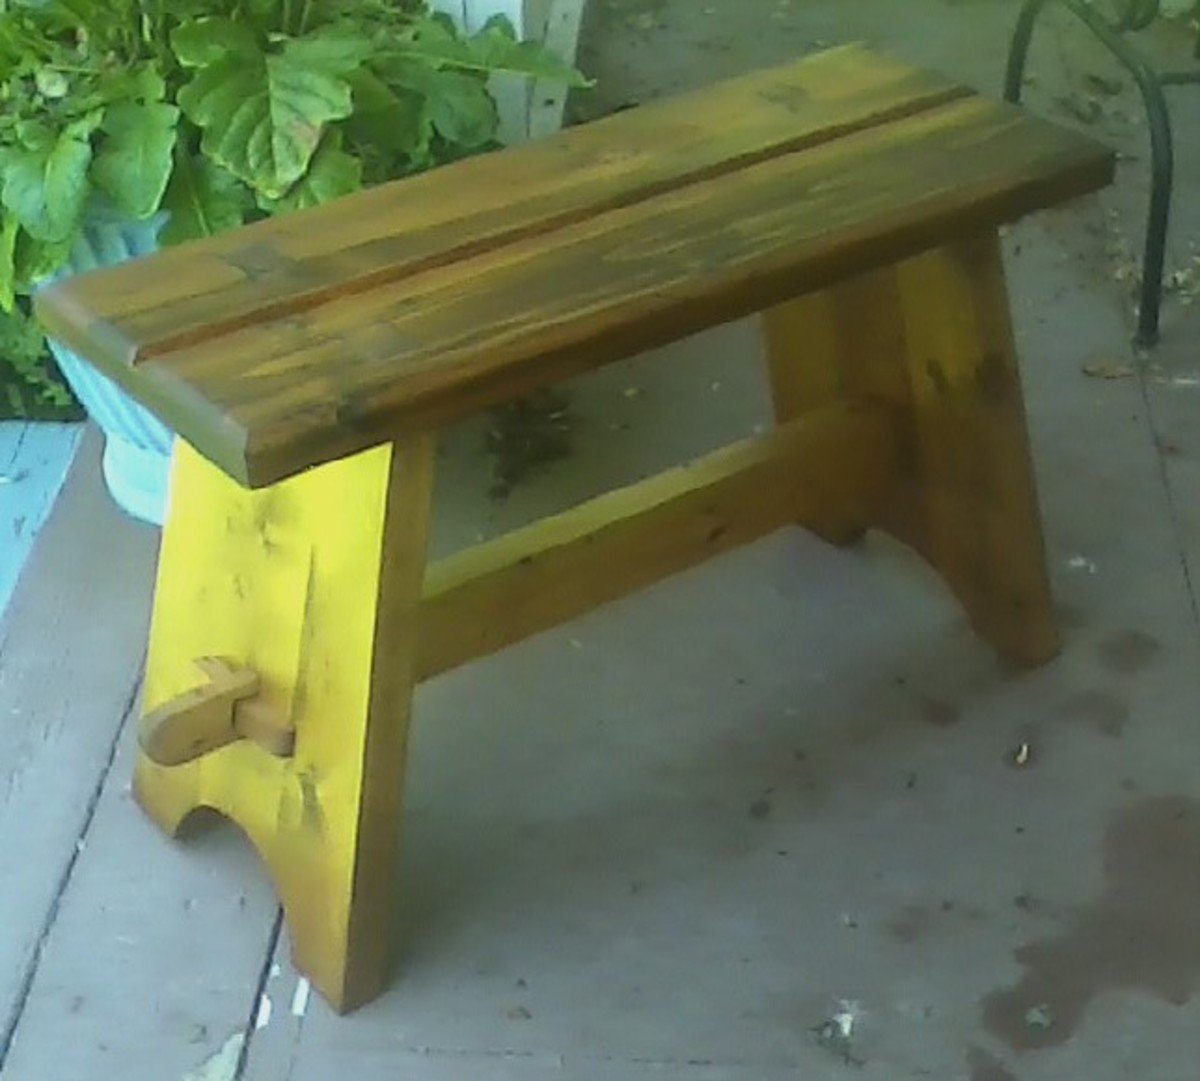 Superb How To Build A Strong Mortise And Tenon Bench Feltmagnet Machost Co Dining Chair Design Ideas Machostcouk